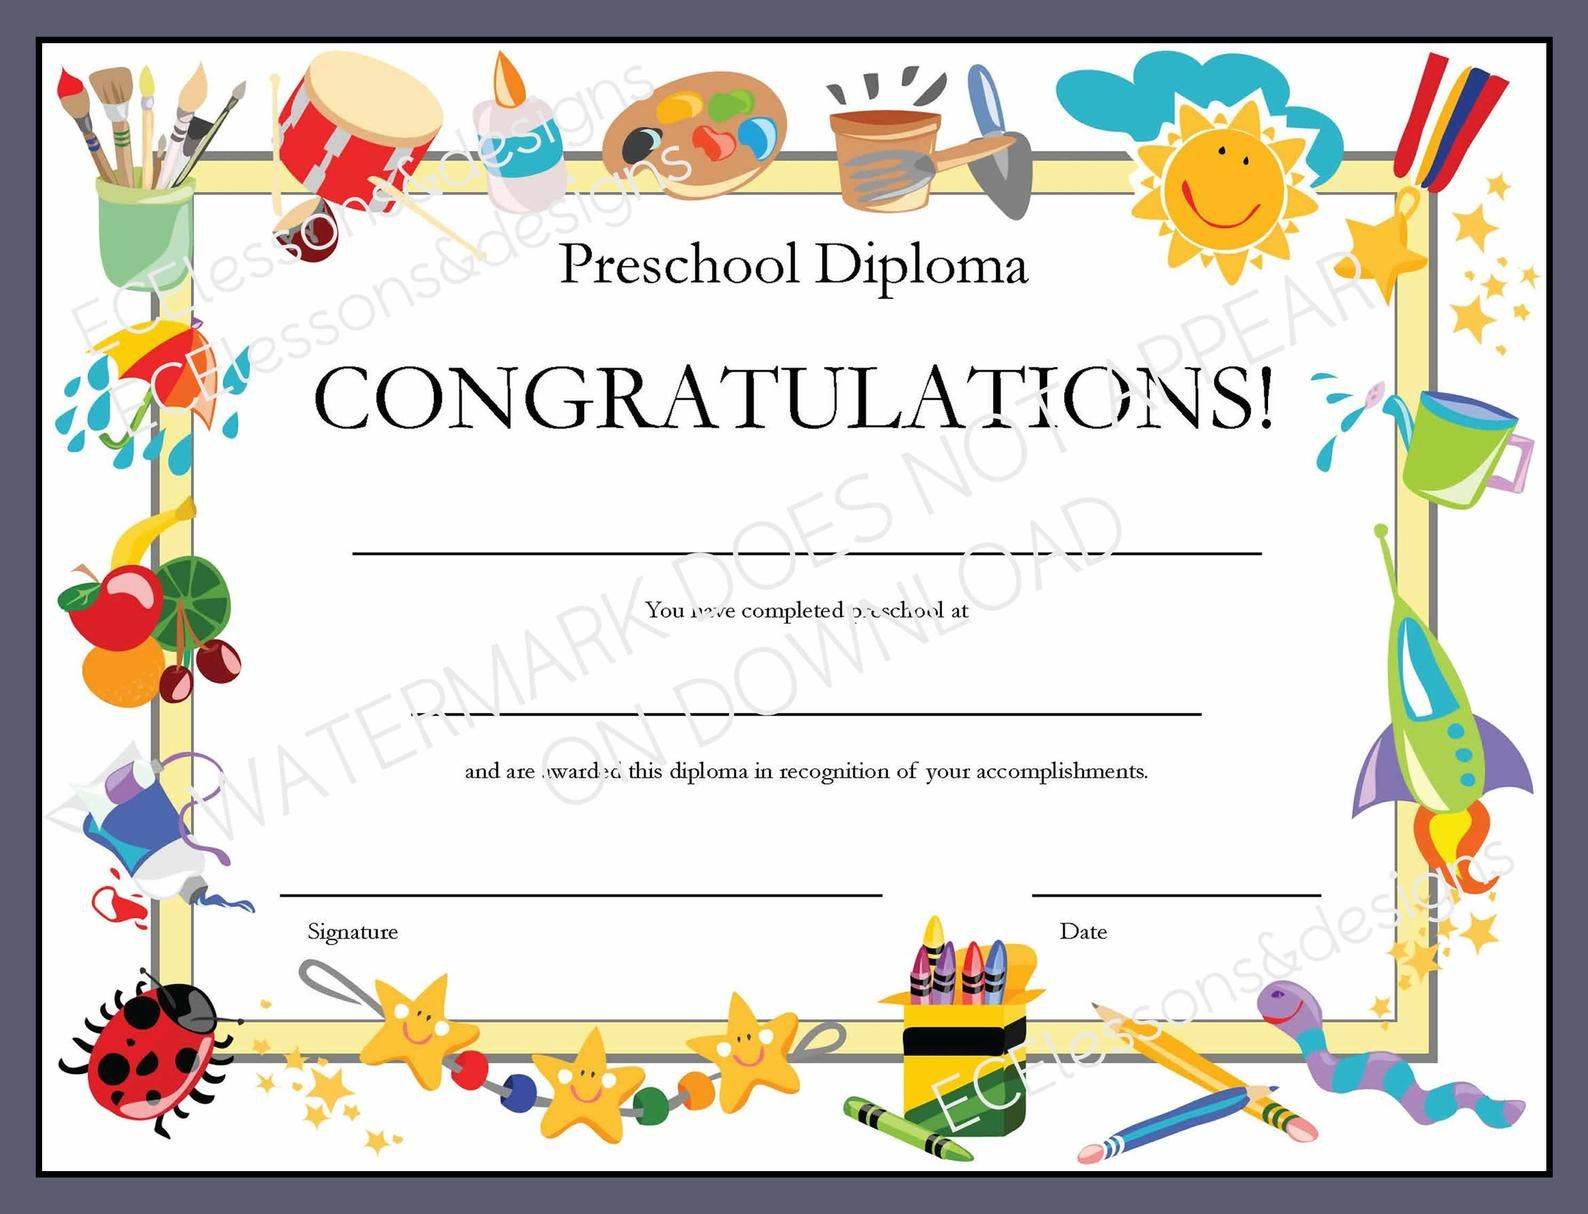 Diploma Certificate For Preschool Or Daycare Printable Pdf With Fill In Blanks For Child S Name School Date Graduation Certificate Template Kindergarten Diploma Preschool Diploma Free certificate template for kids